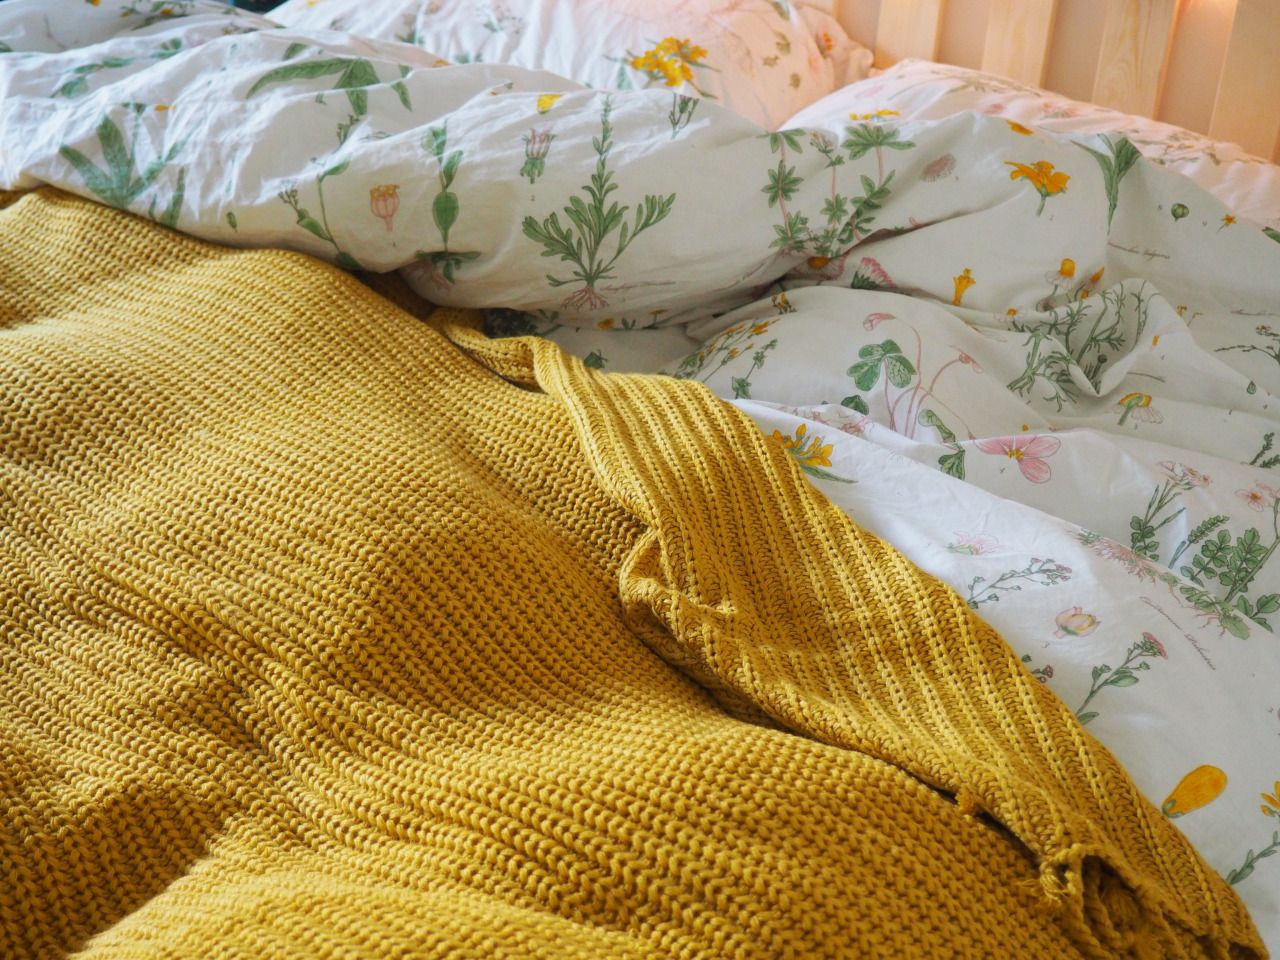 Yellow aesthetic and bed image also best dormir images on pinterest bedroom inspo ideas rh